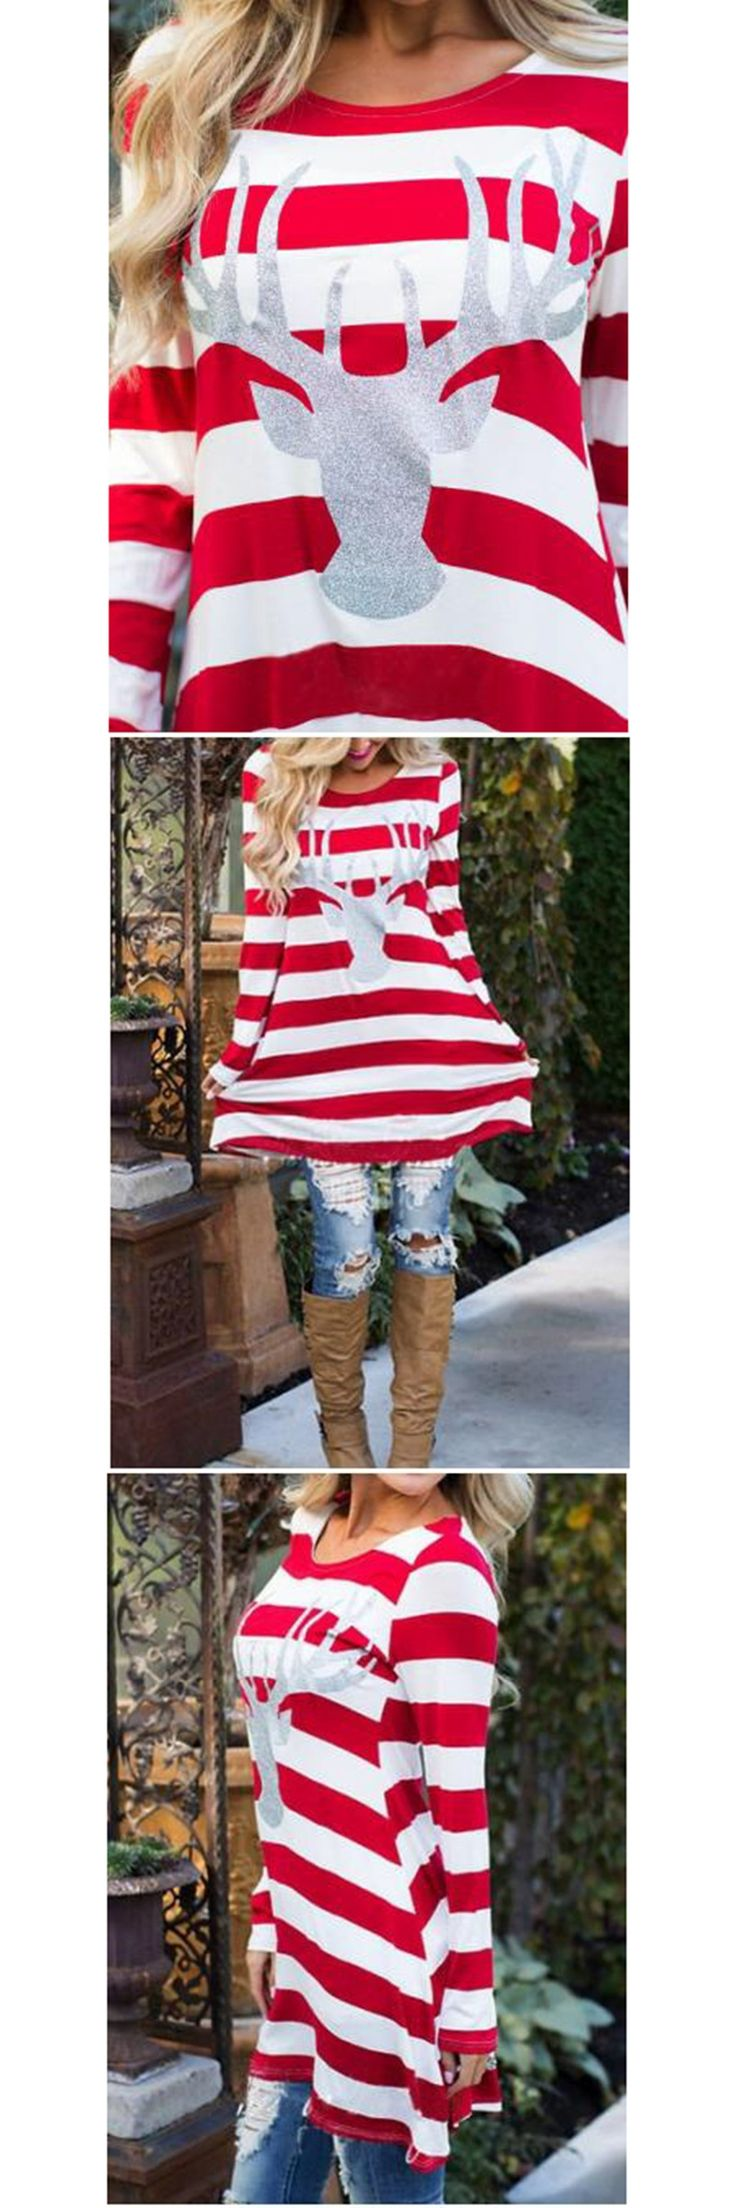 2017 Christmas Deer Family Matching Outfits Dresses Mother Girls Dresses Red Striped Matching Christmas Outfits Family Look